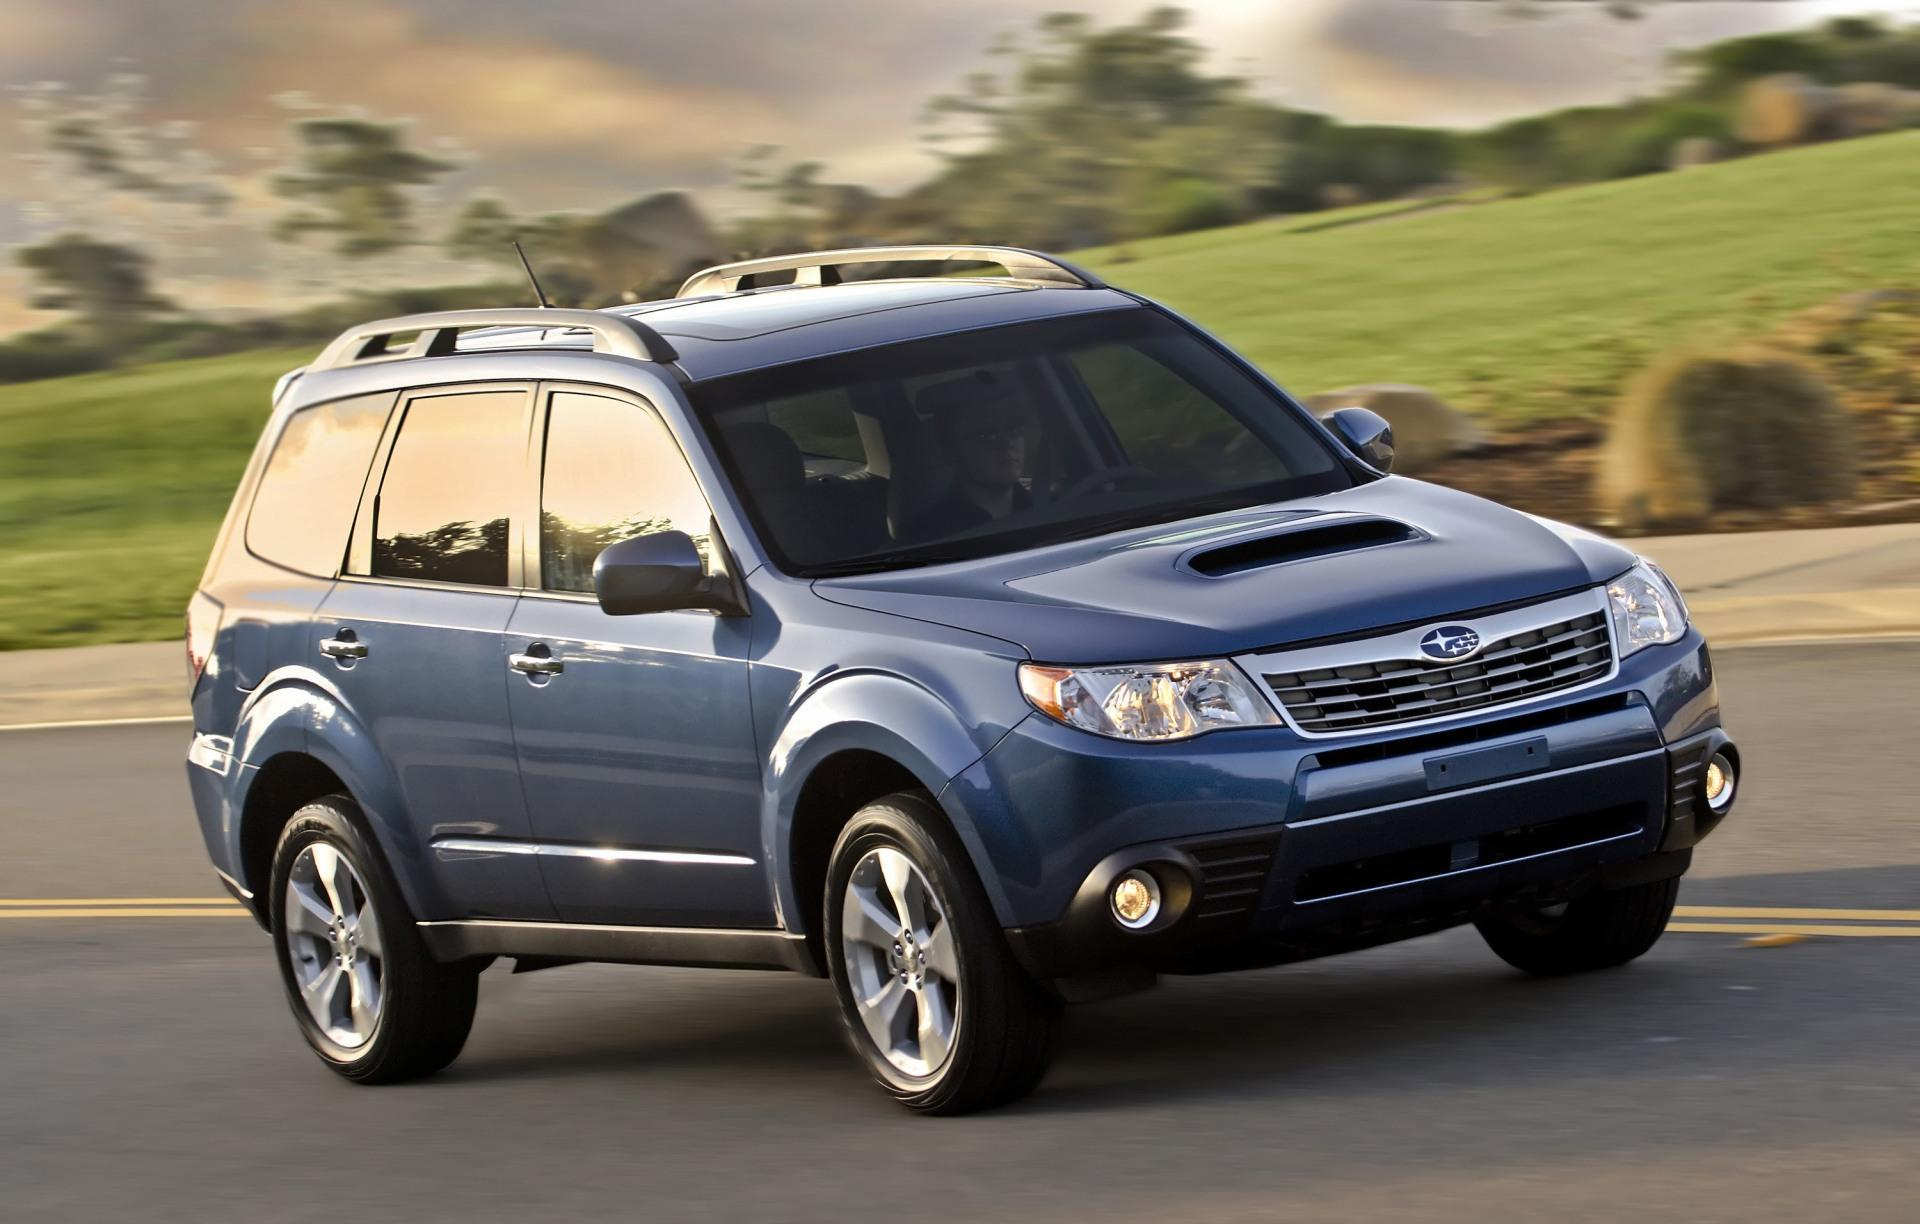 2010 Subaru Forester News and Information | conceptcarz.com